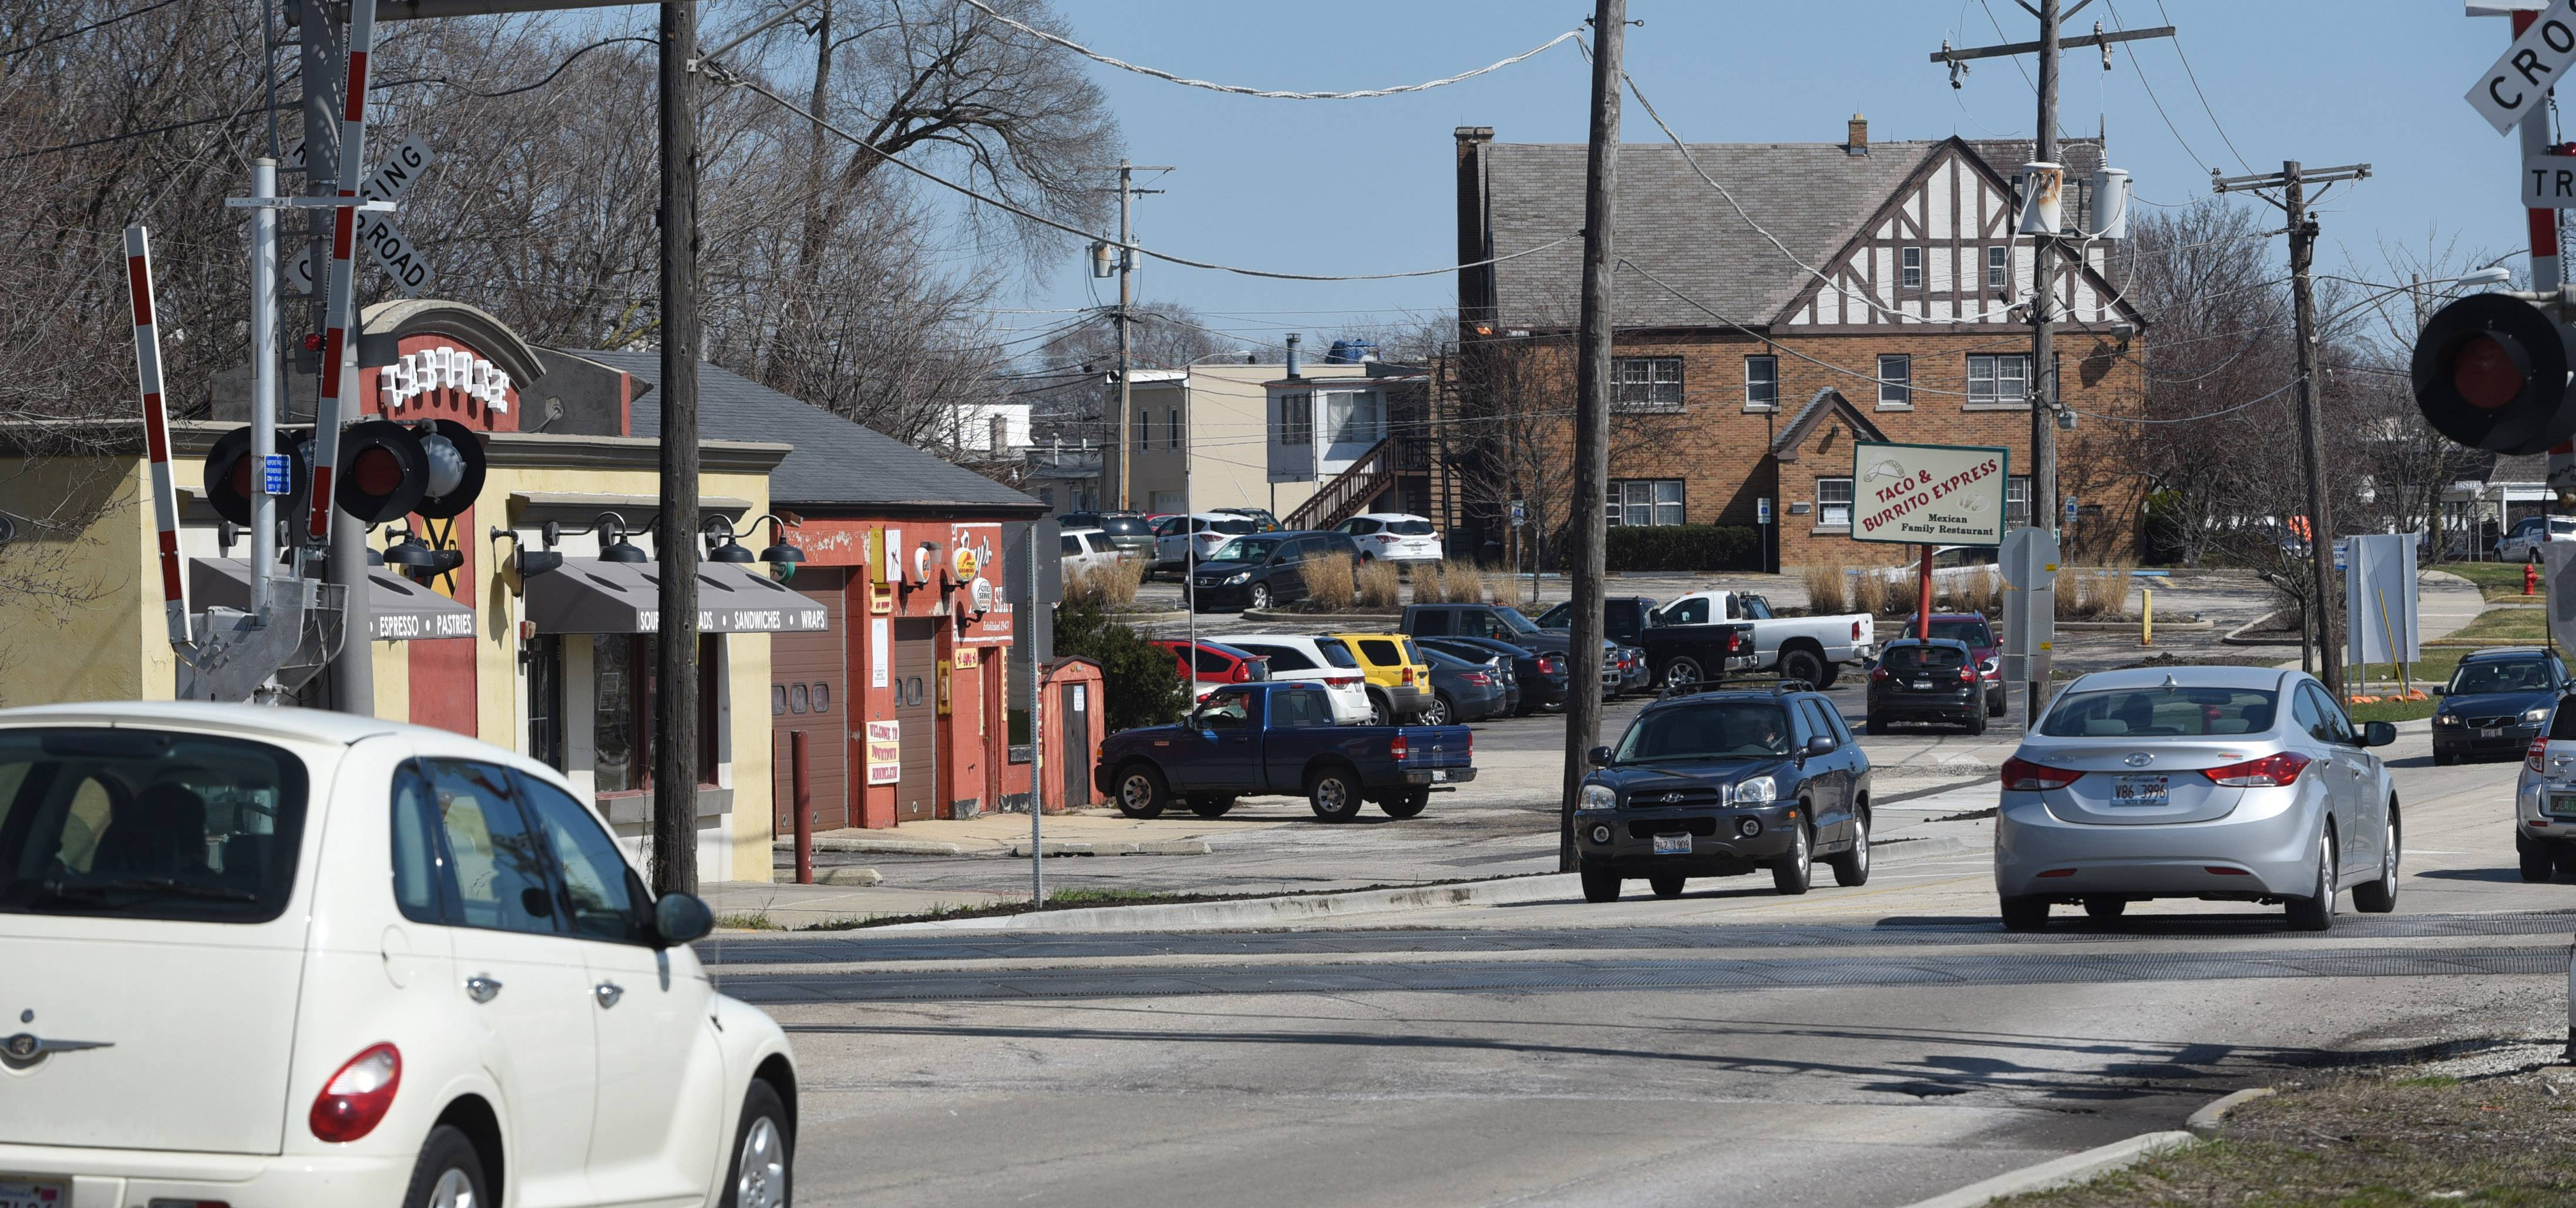 Mundelein officials tap consultant for downtown planning